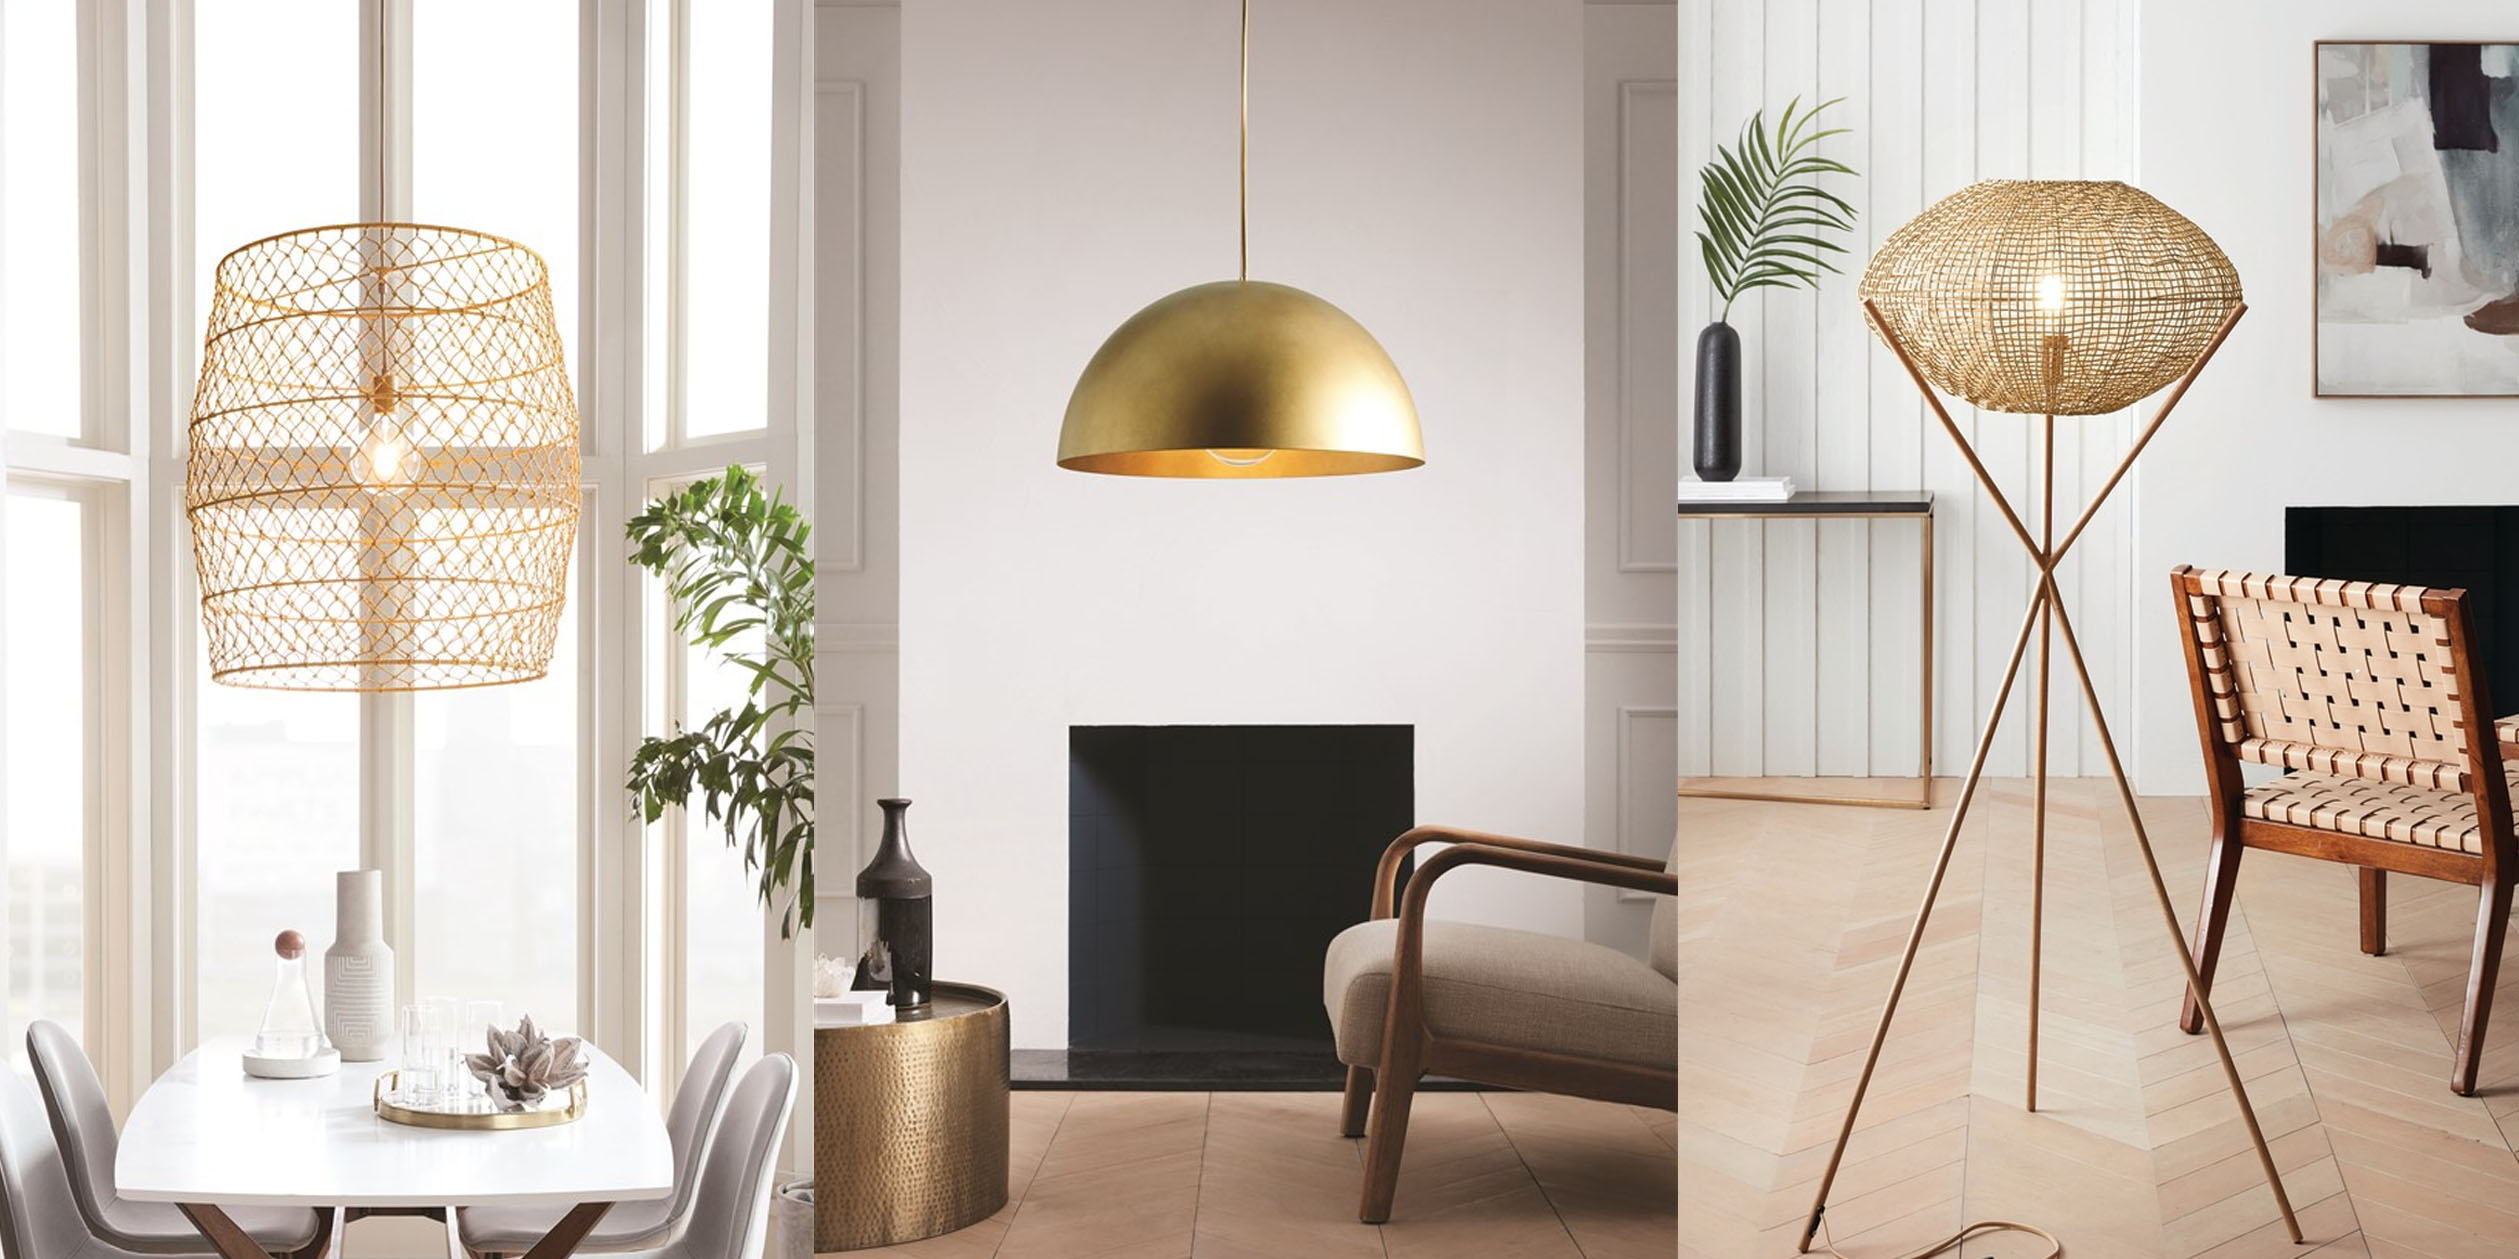 target s new modern light collection